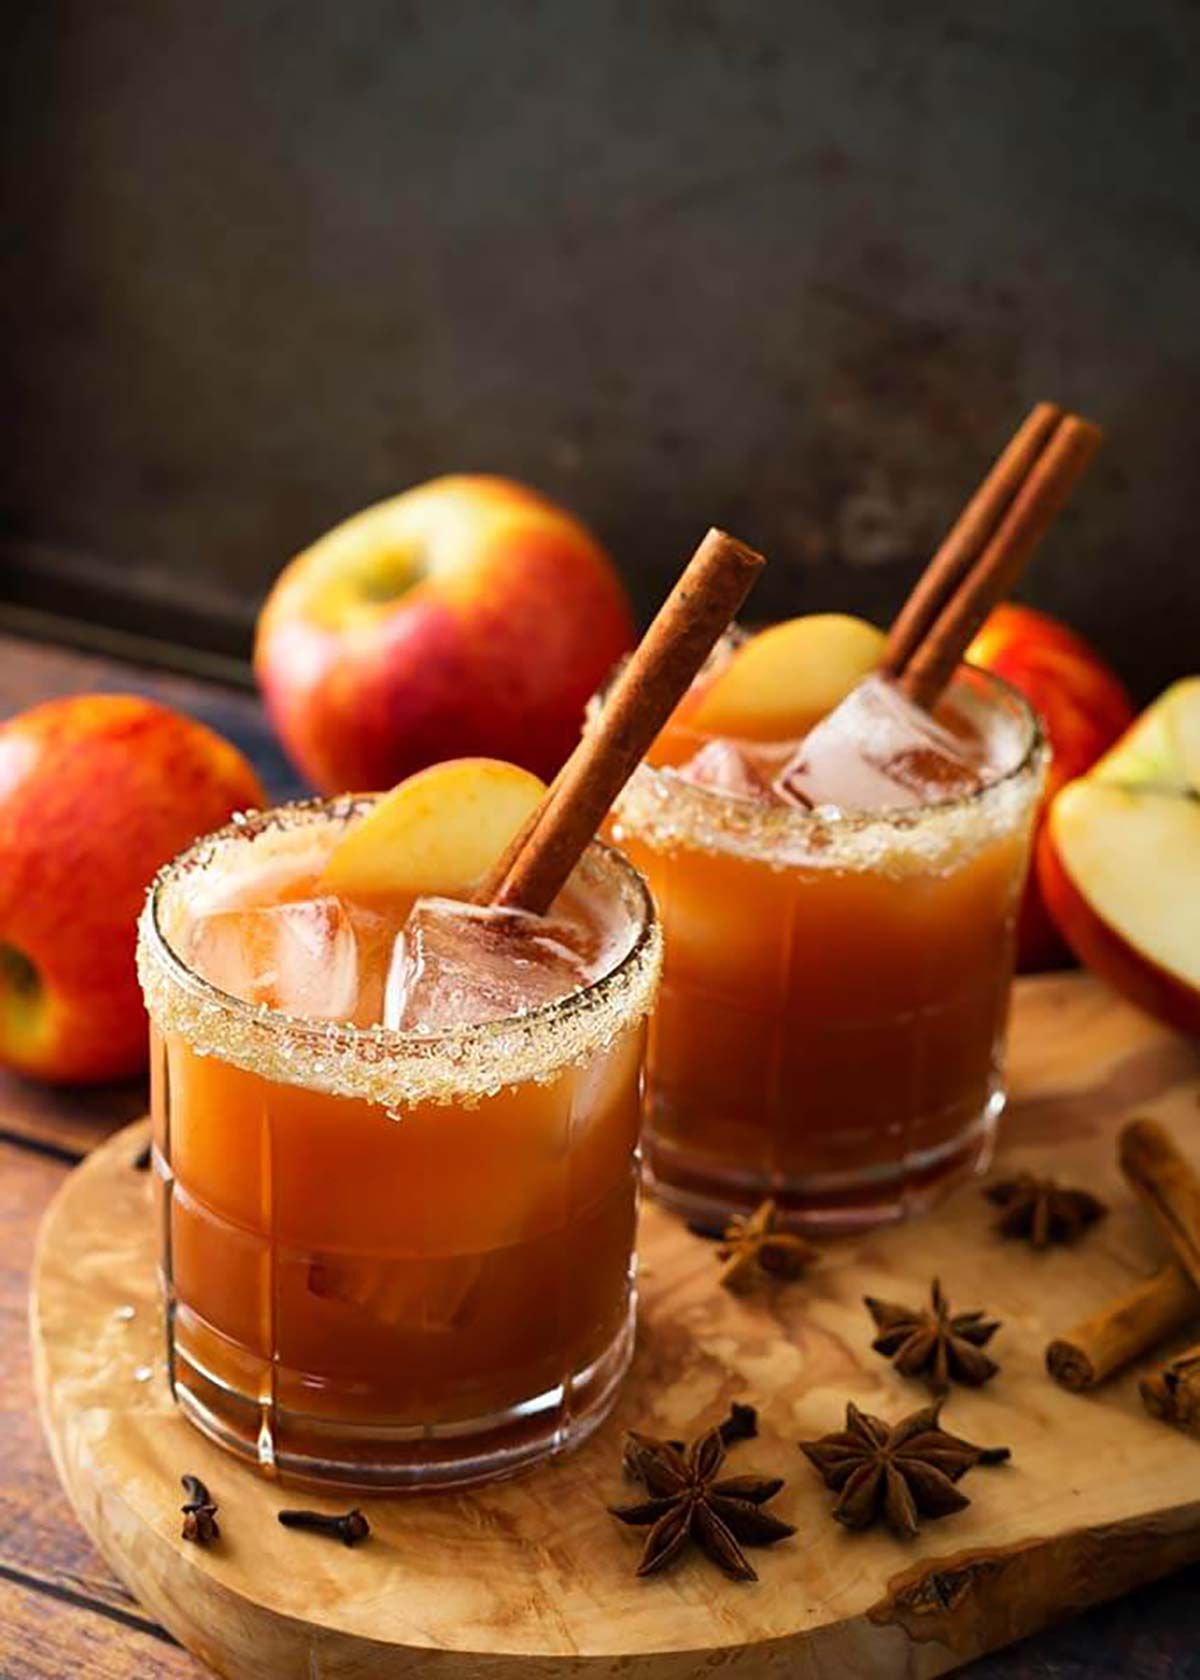 2 apple cocktails garnished with cinnamon sticks, apple slices and sugar rims.